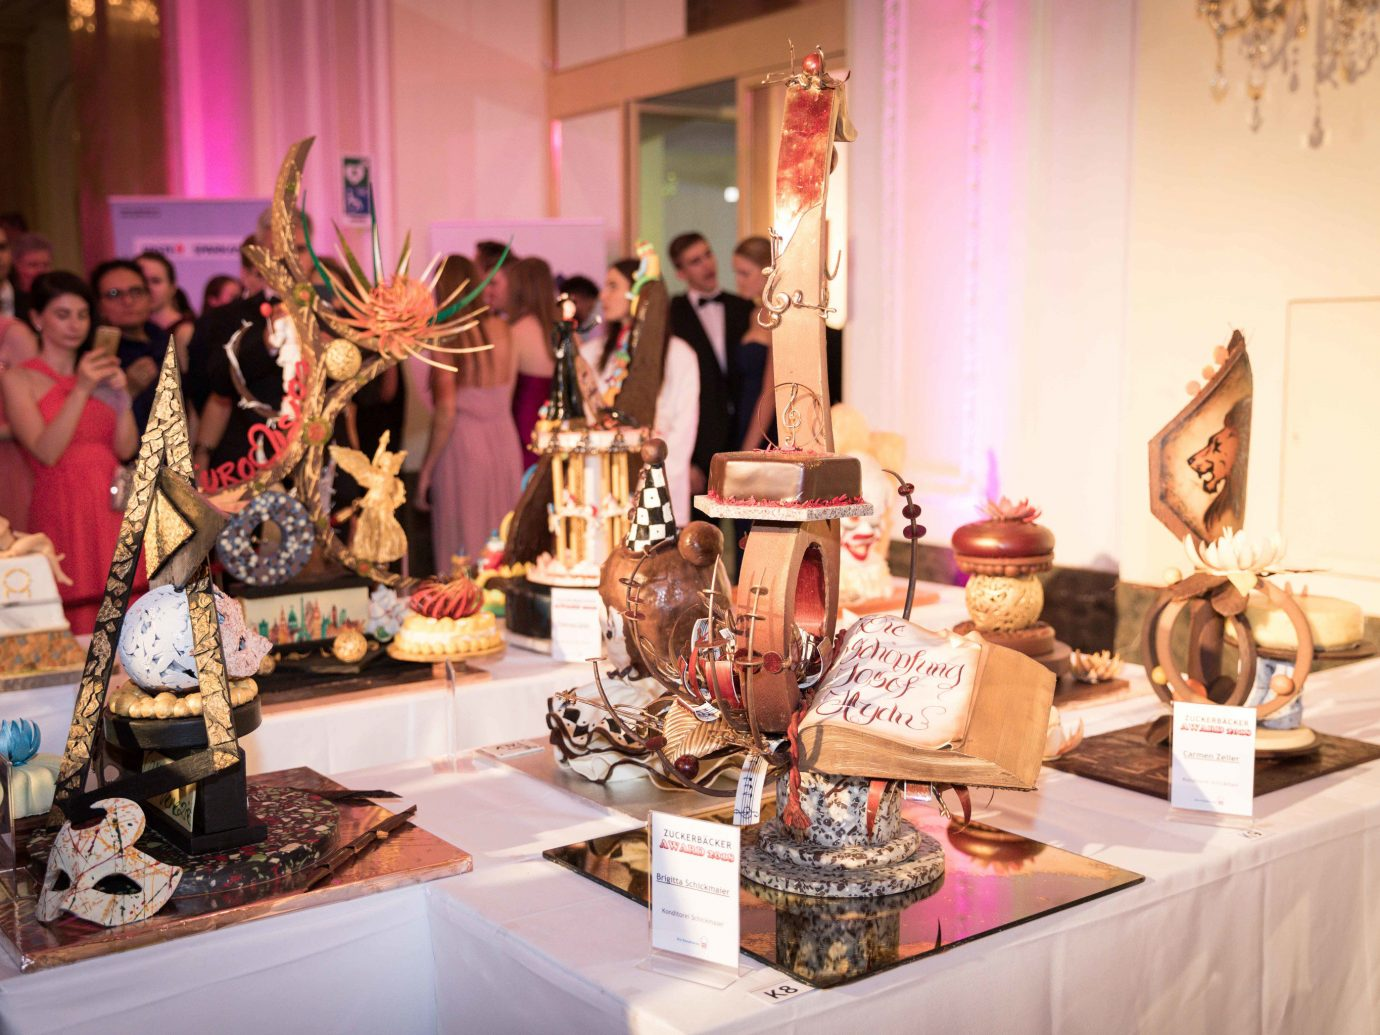 Sweets and a cake at Confectioners' Ball